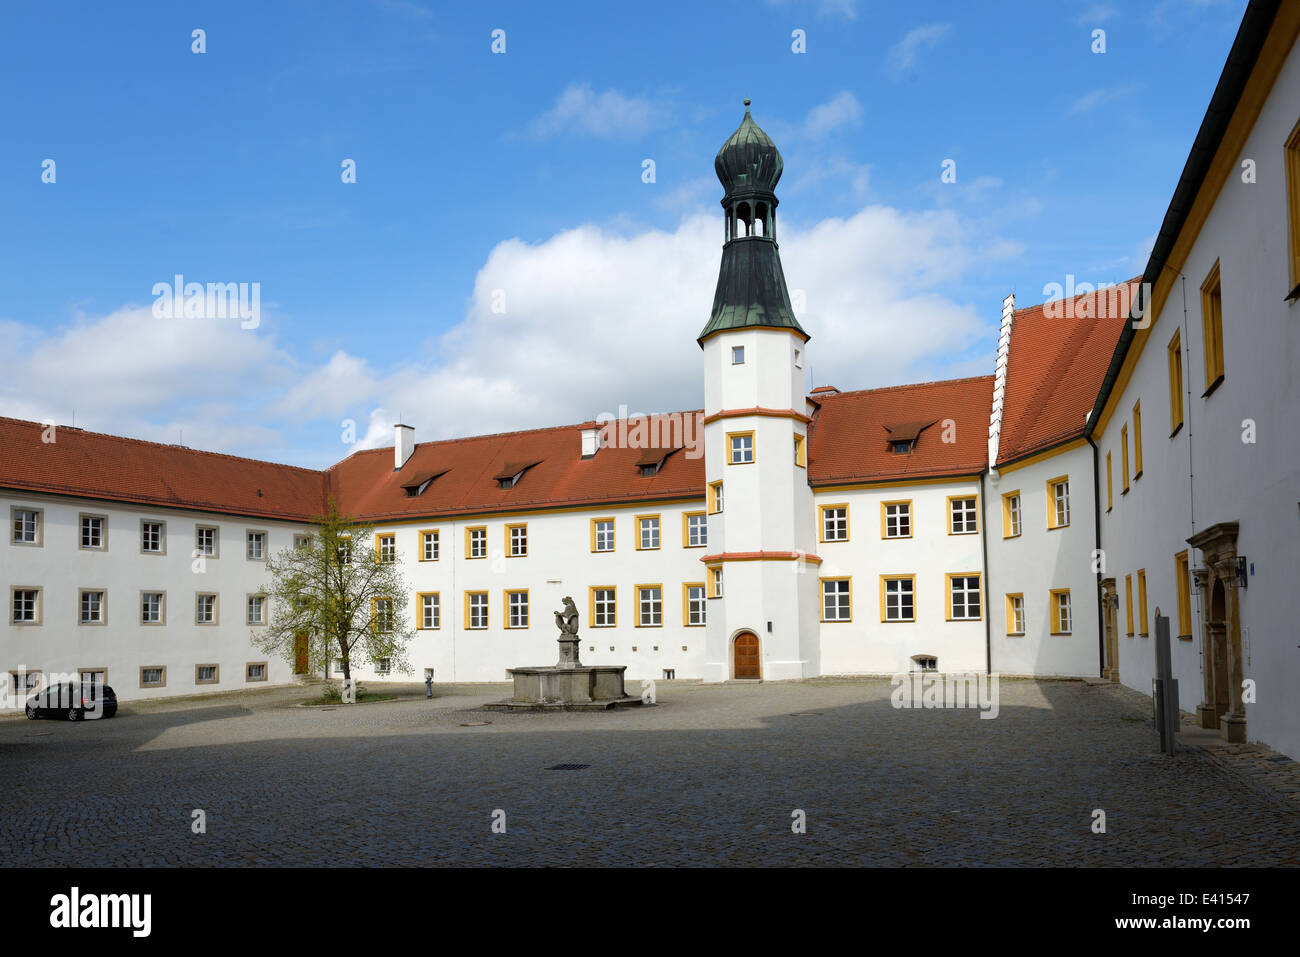 sulzbach rosenberg castle stockfotos sulzbach rosenberg castle bilder alamy. Black Bedroom Furniture Sets. Home Design Ideas